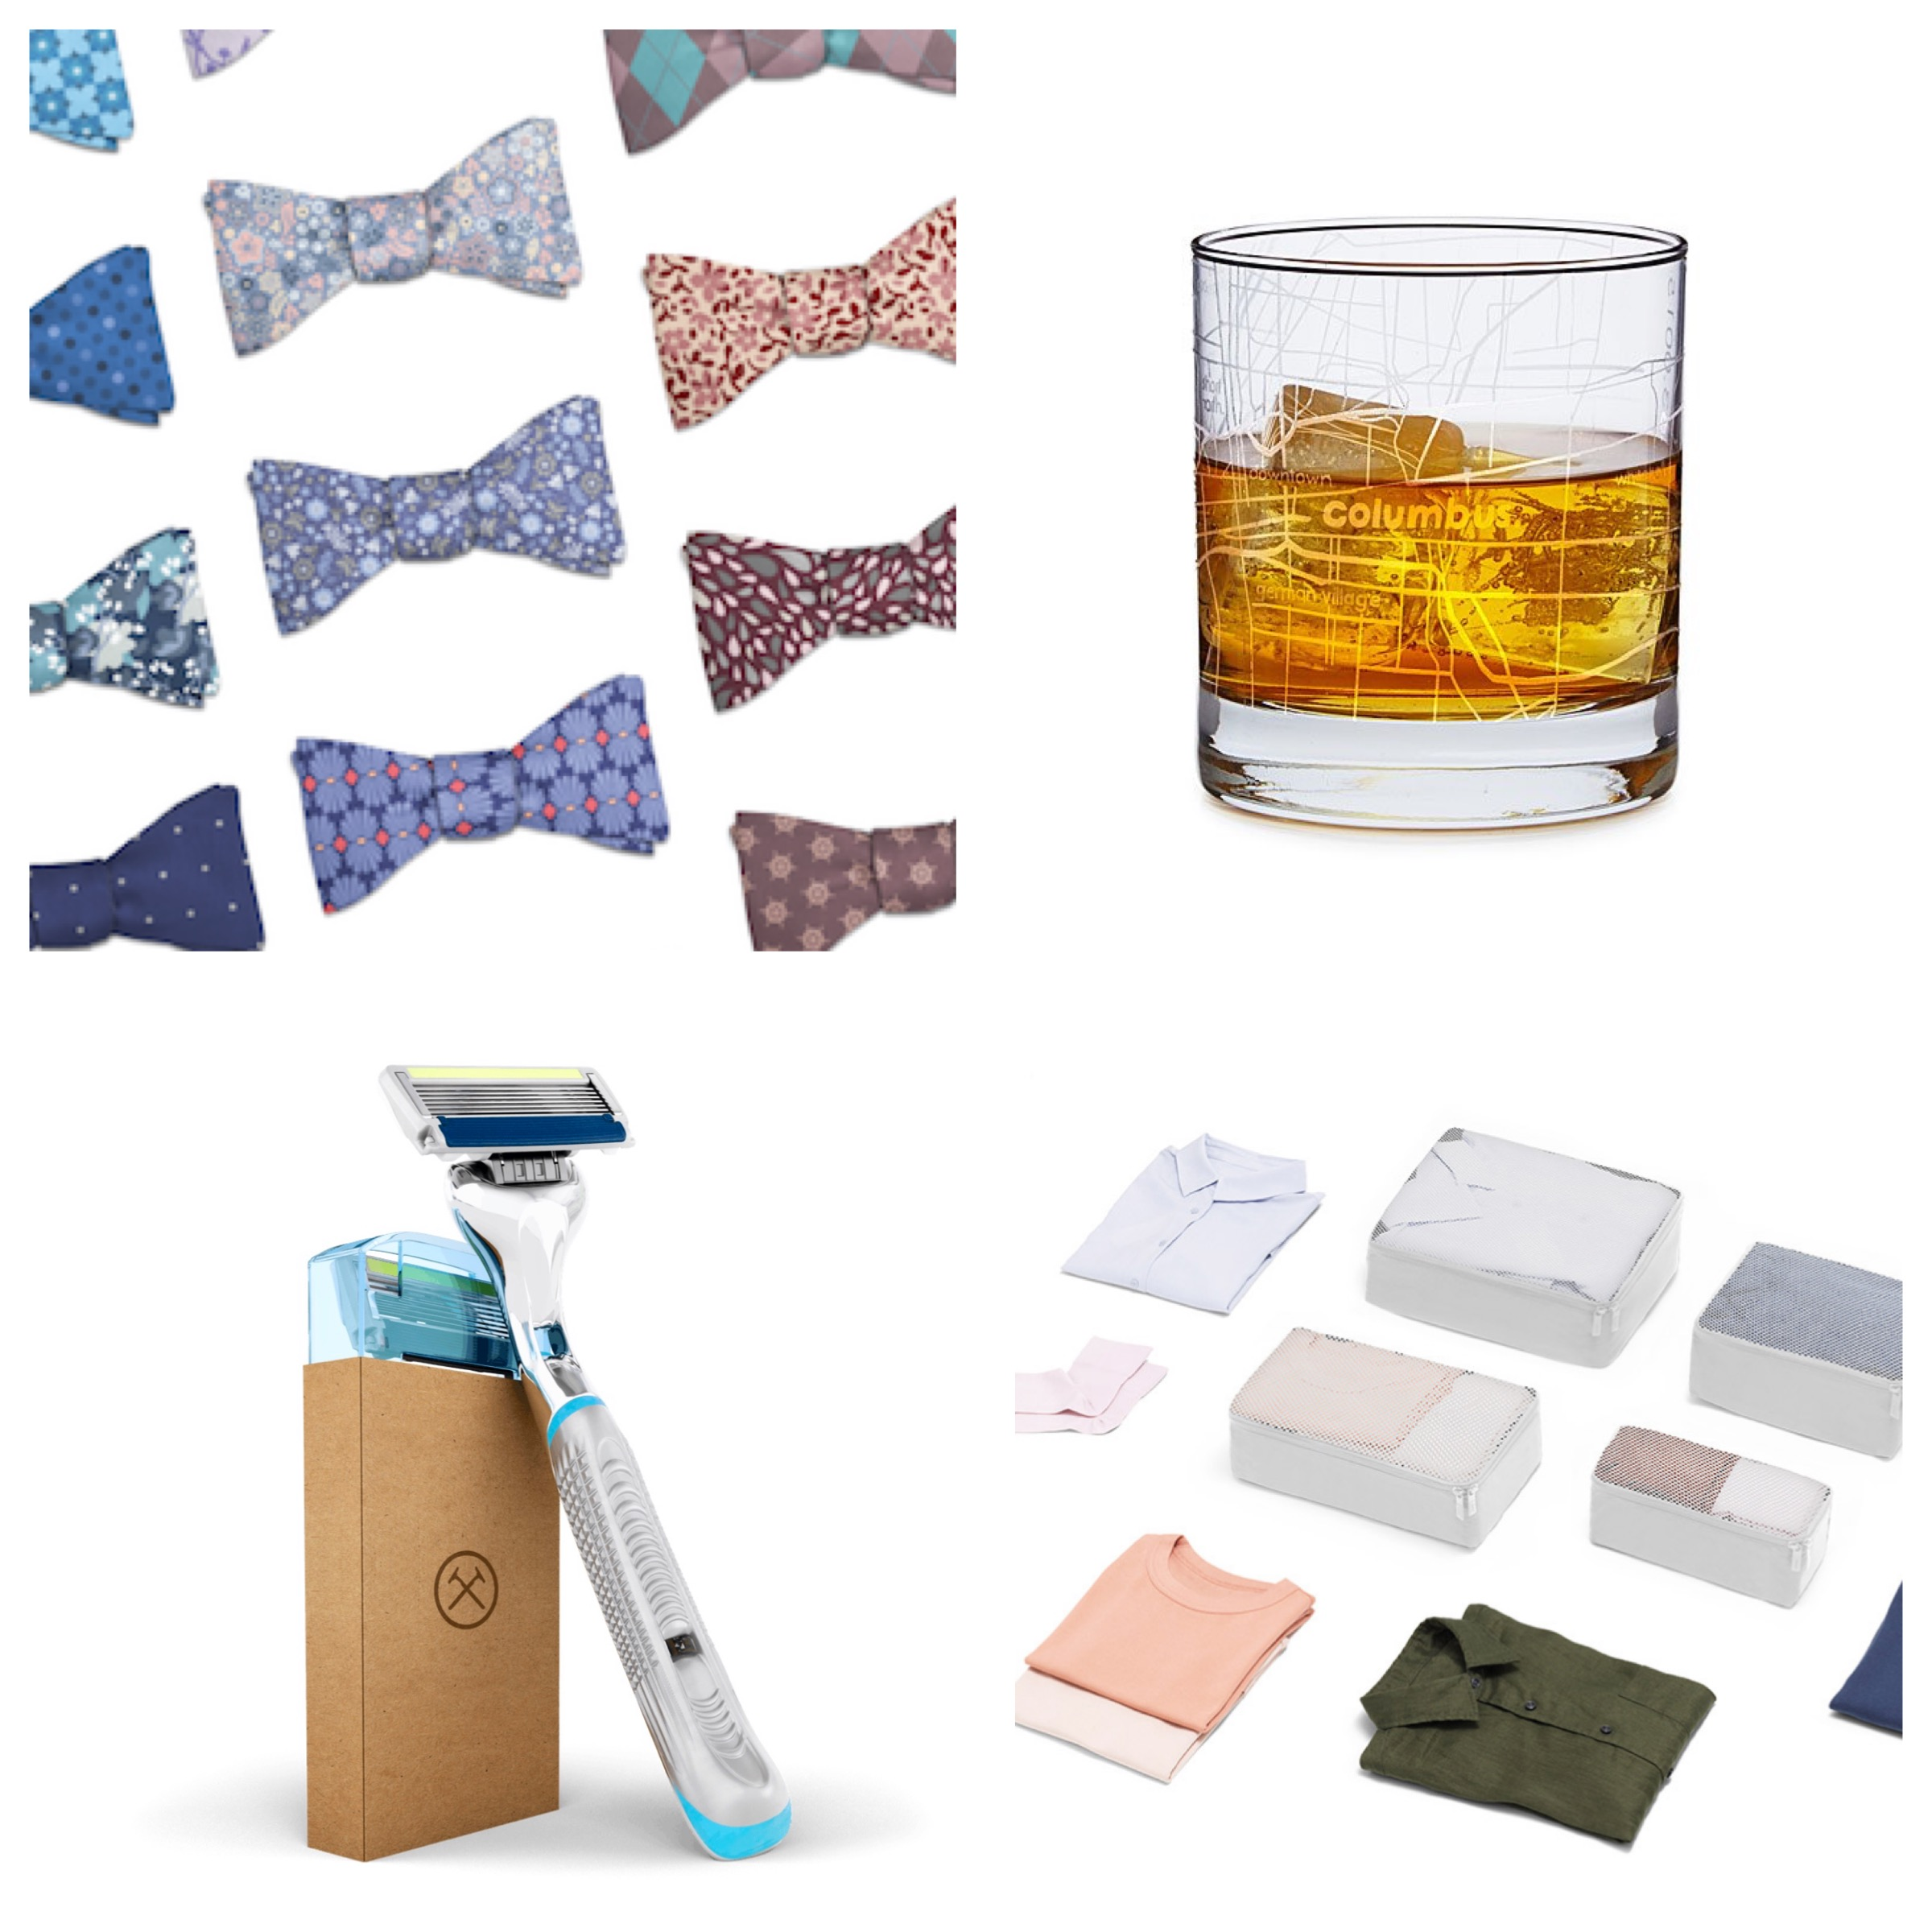 under $50 christmas gift guide: - for the classy guy: knotty tie bowties made from recycled bottles for $40for the whiskey drinker: uncommon goods city map glass for $16for the hairy: dollar shave club monthly razor box for $9 a monthfor the traveler: away insider packing cubes for $45